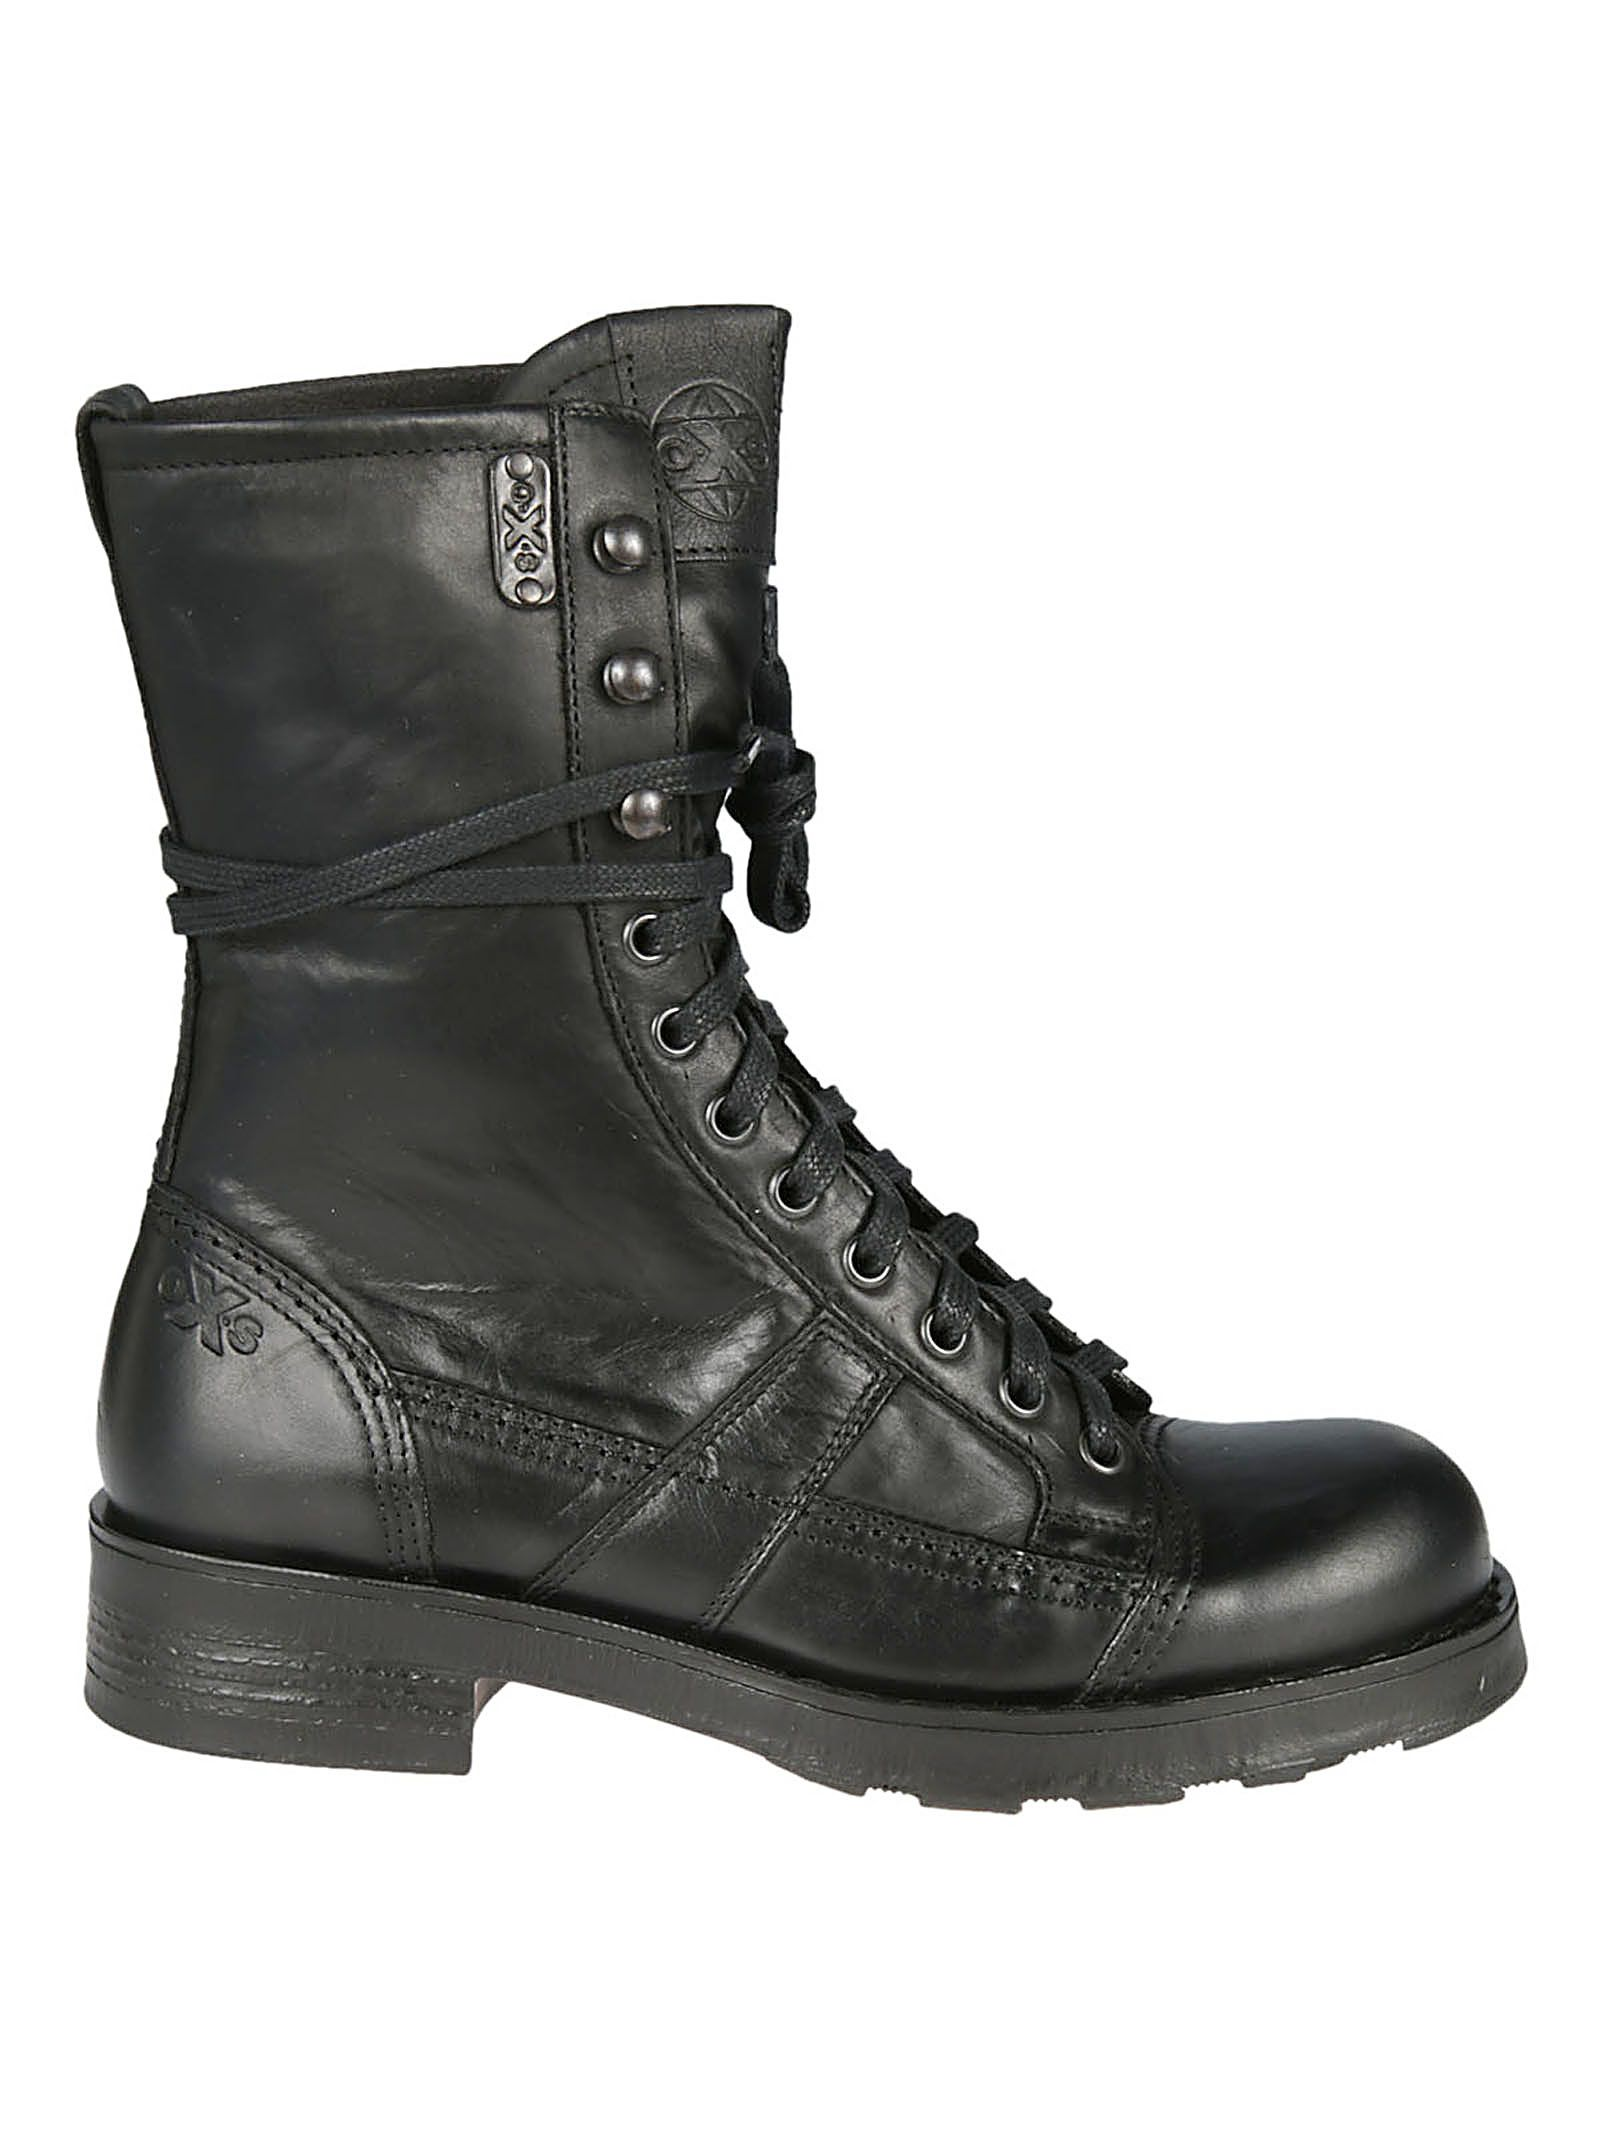 OXS Oxs Stewart Lace-Up Boots in Nero